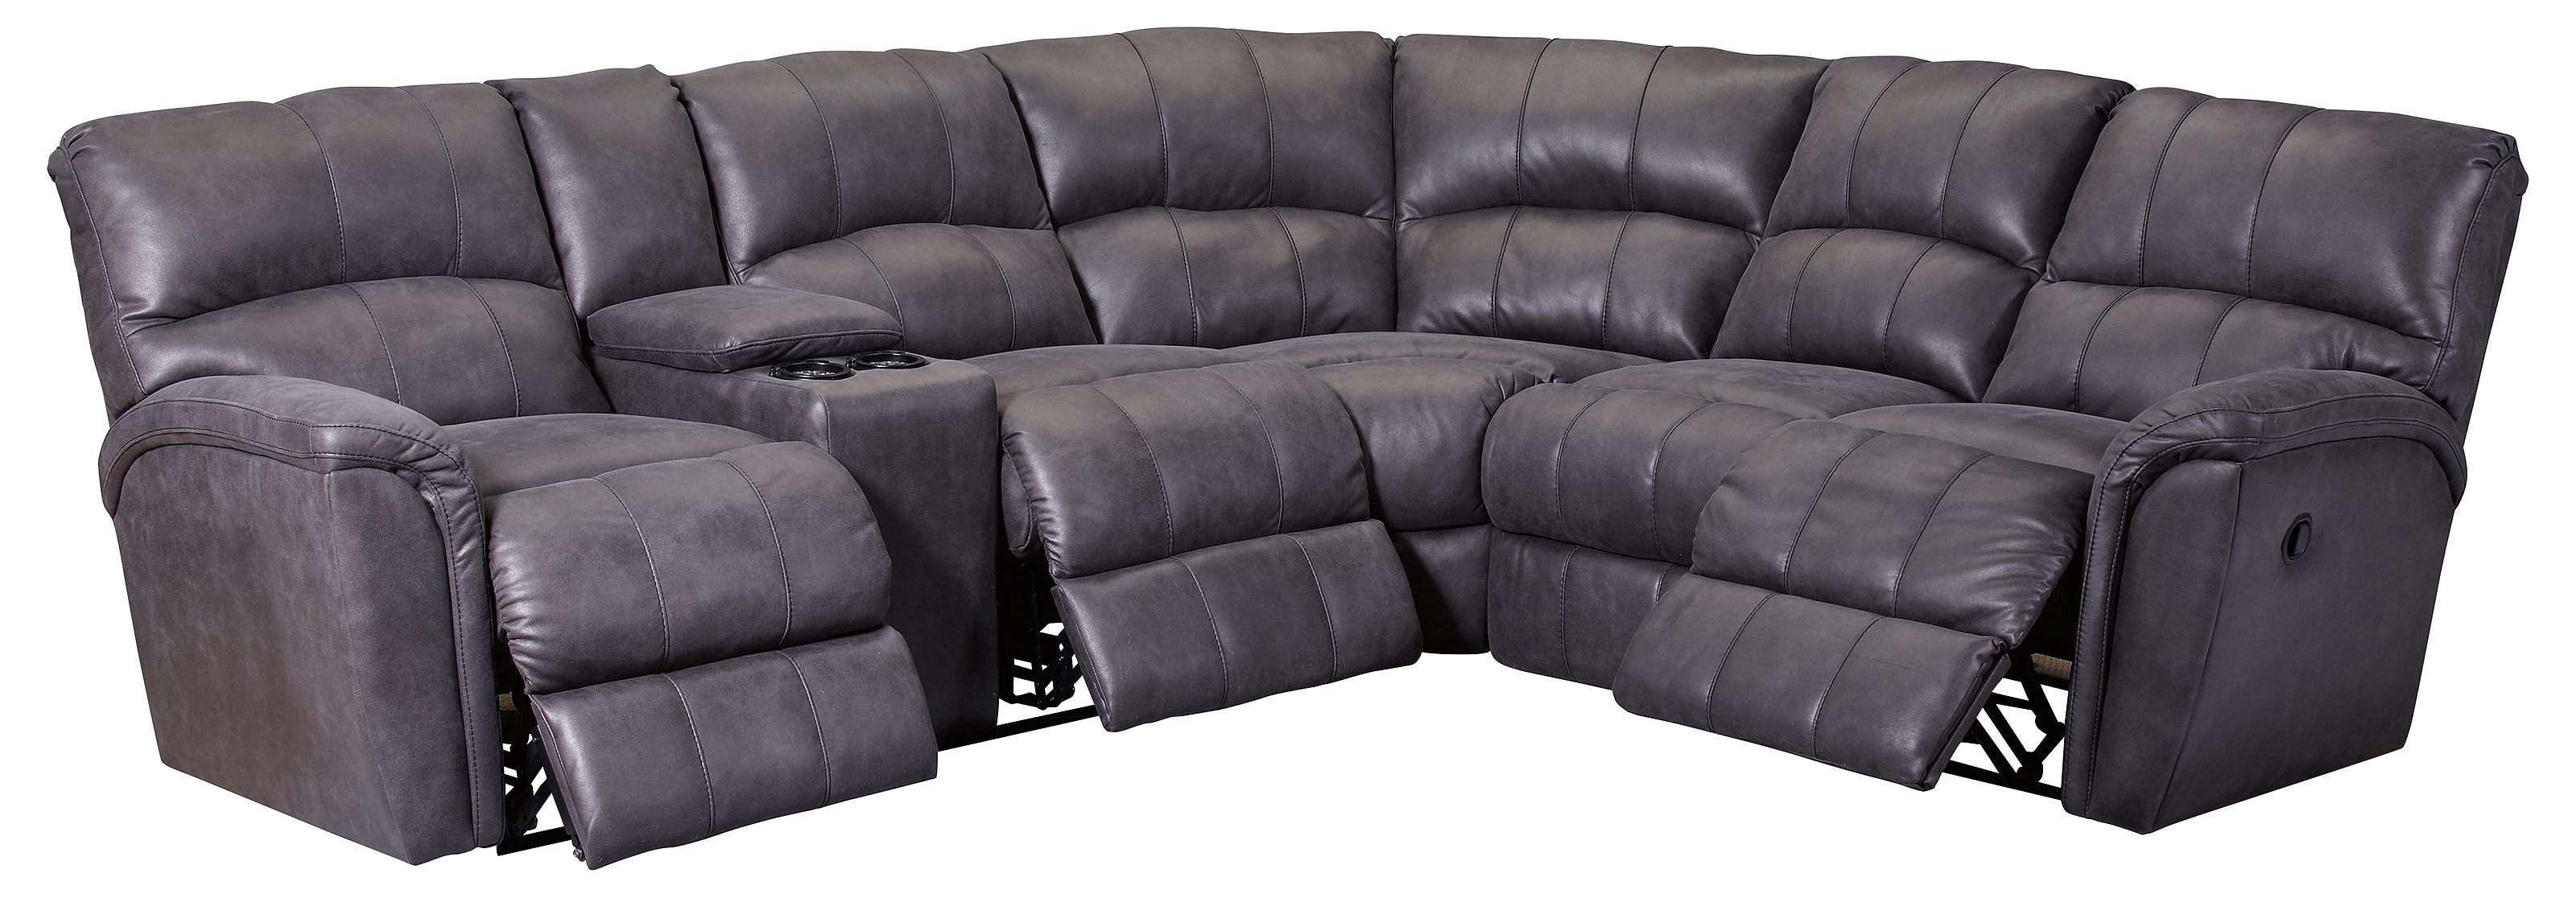 Grand Torino Reclining Sectional 230